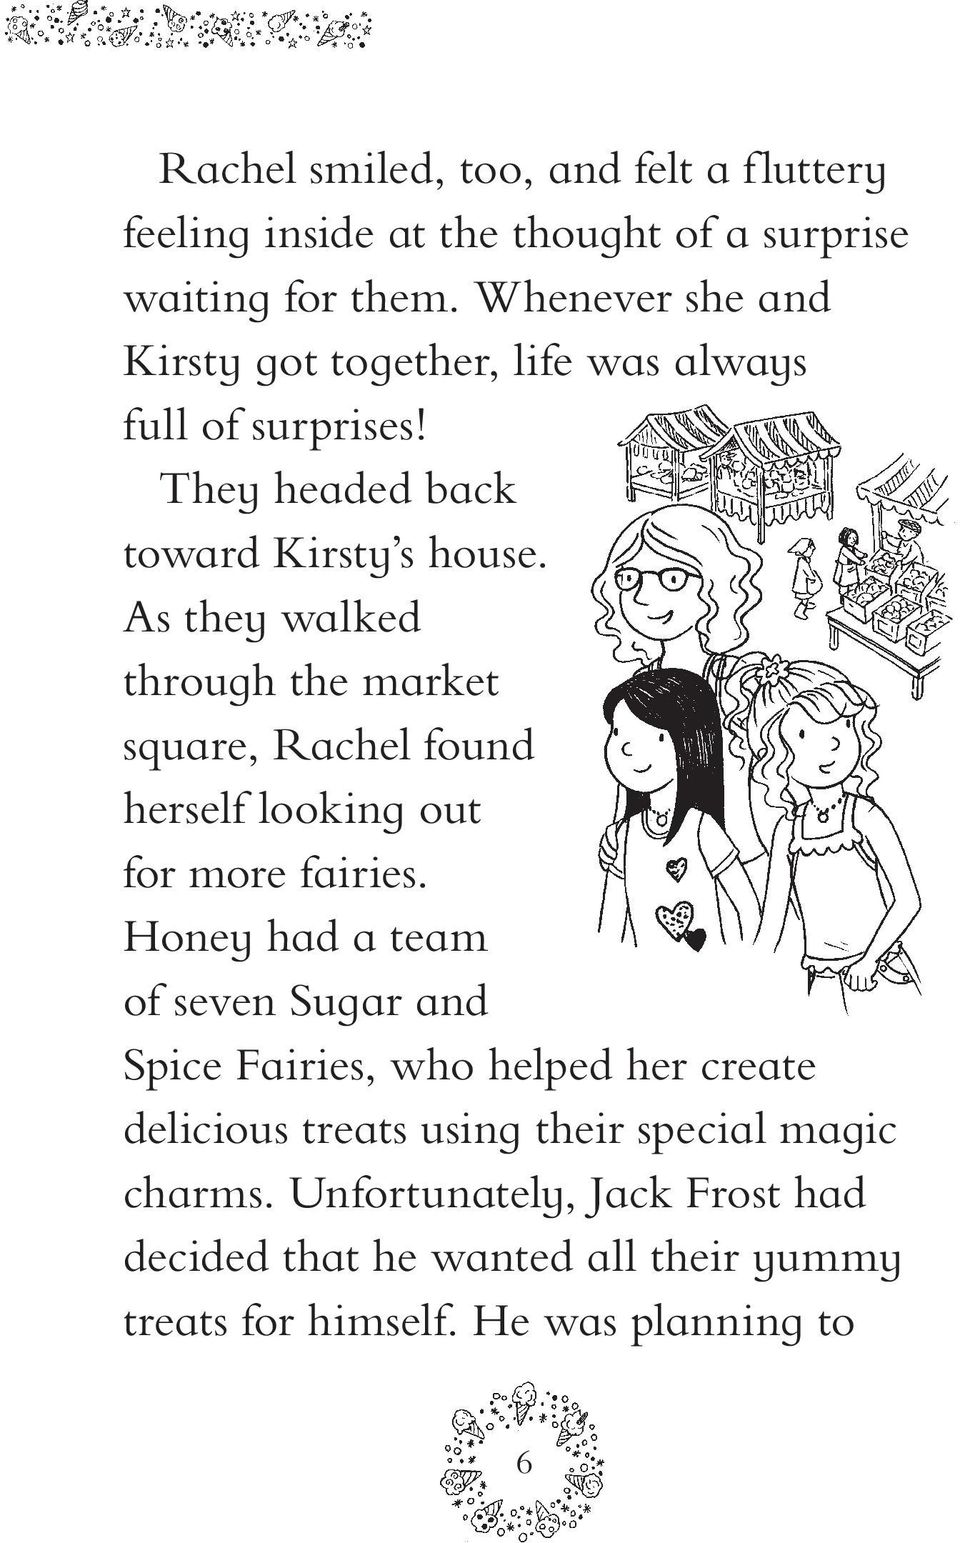 As they walked through the market square, Rachel found herself looking out for more fairies.